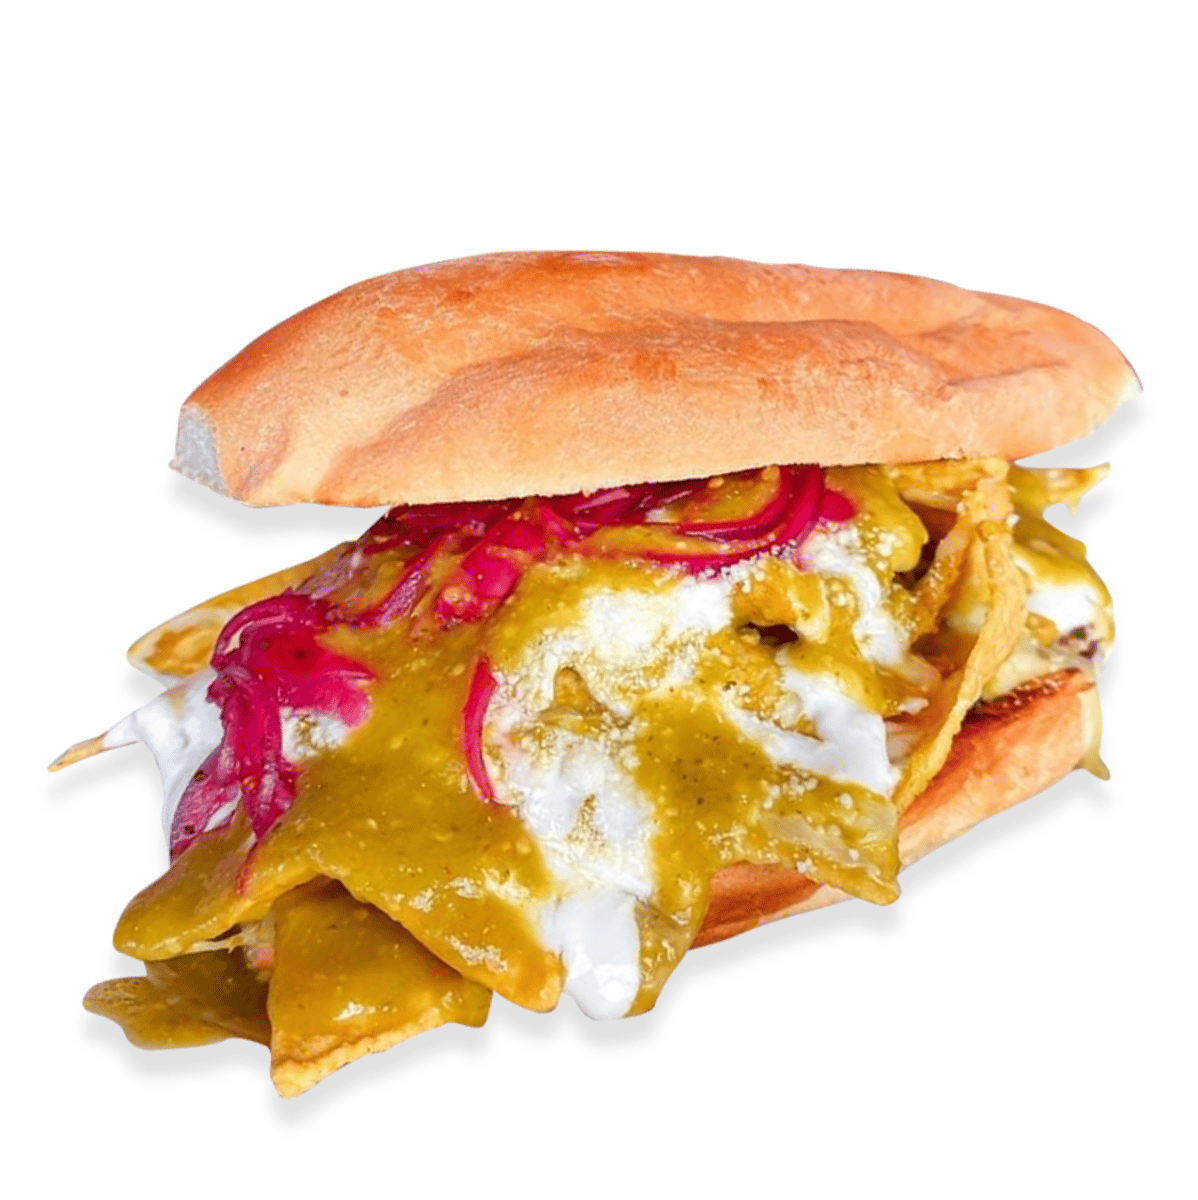 17. Chilaquiles (Big Torta Only)